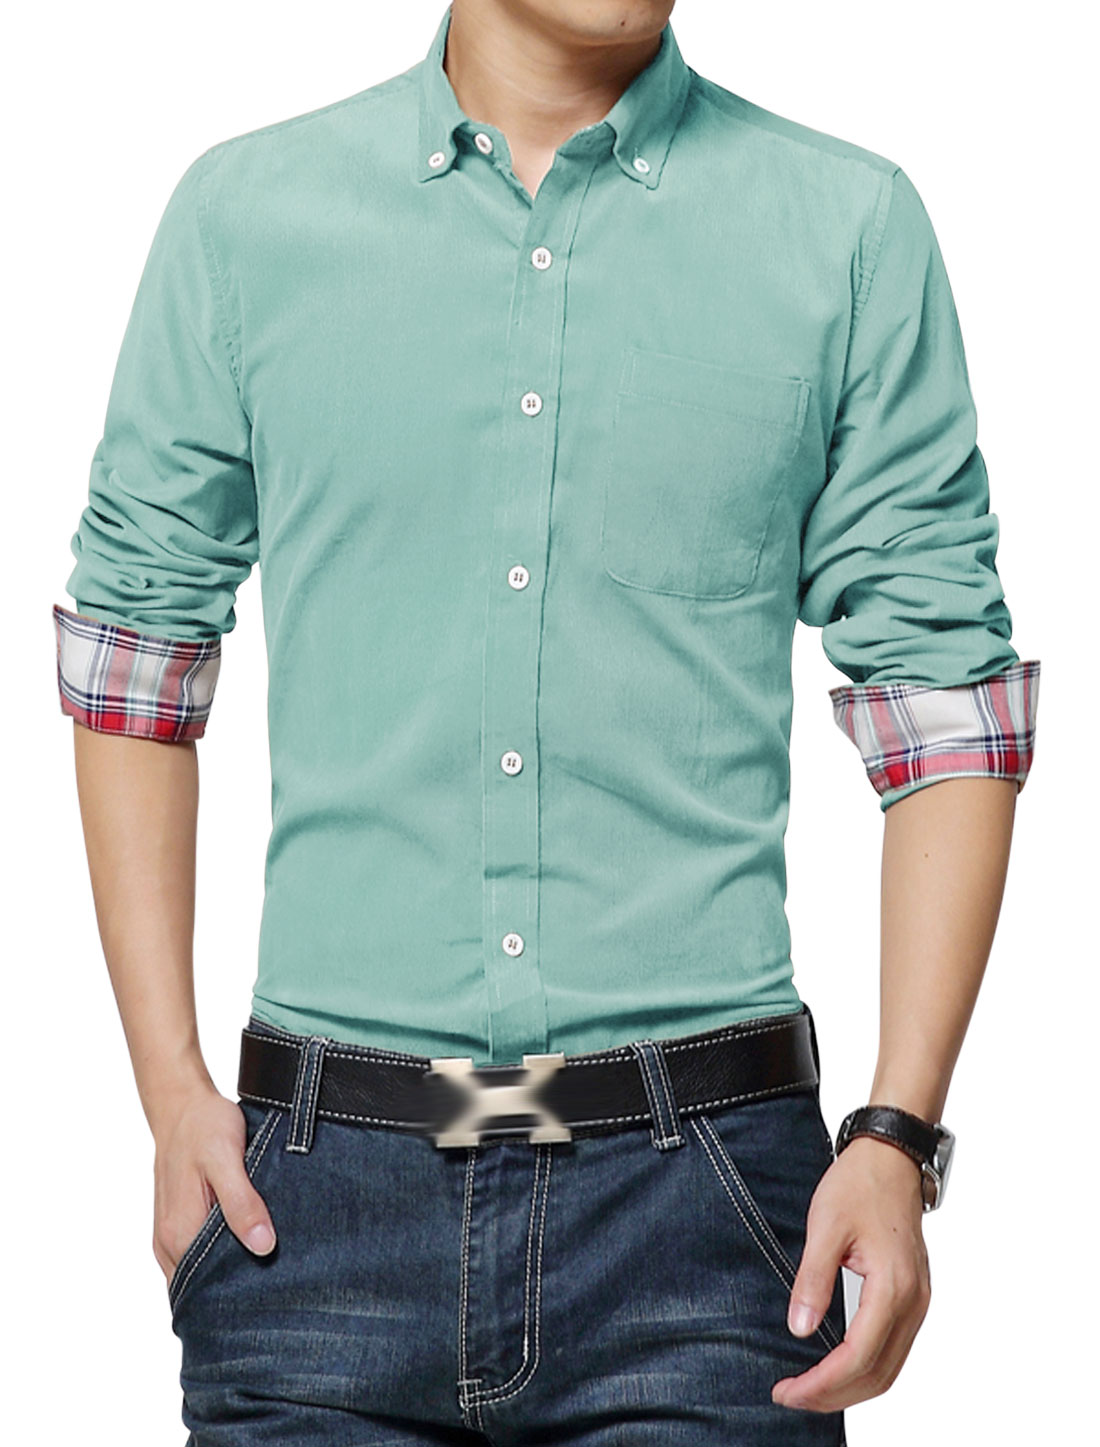 Man Full Sleeves Single Breasted Front Light Green Corduroy Shirt M